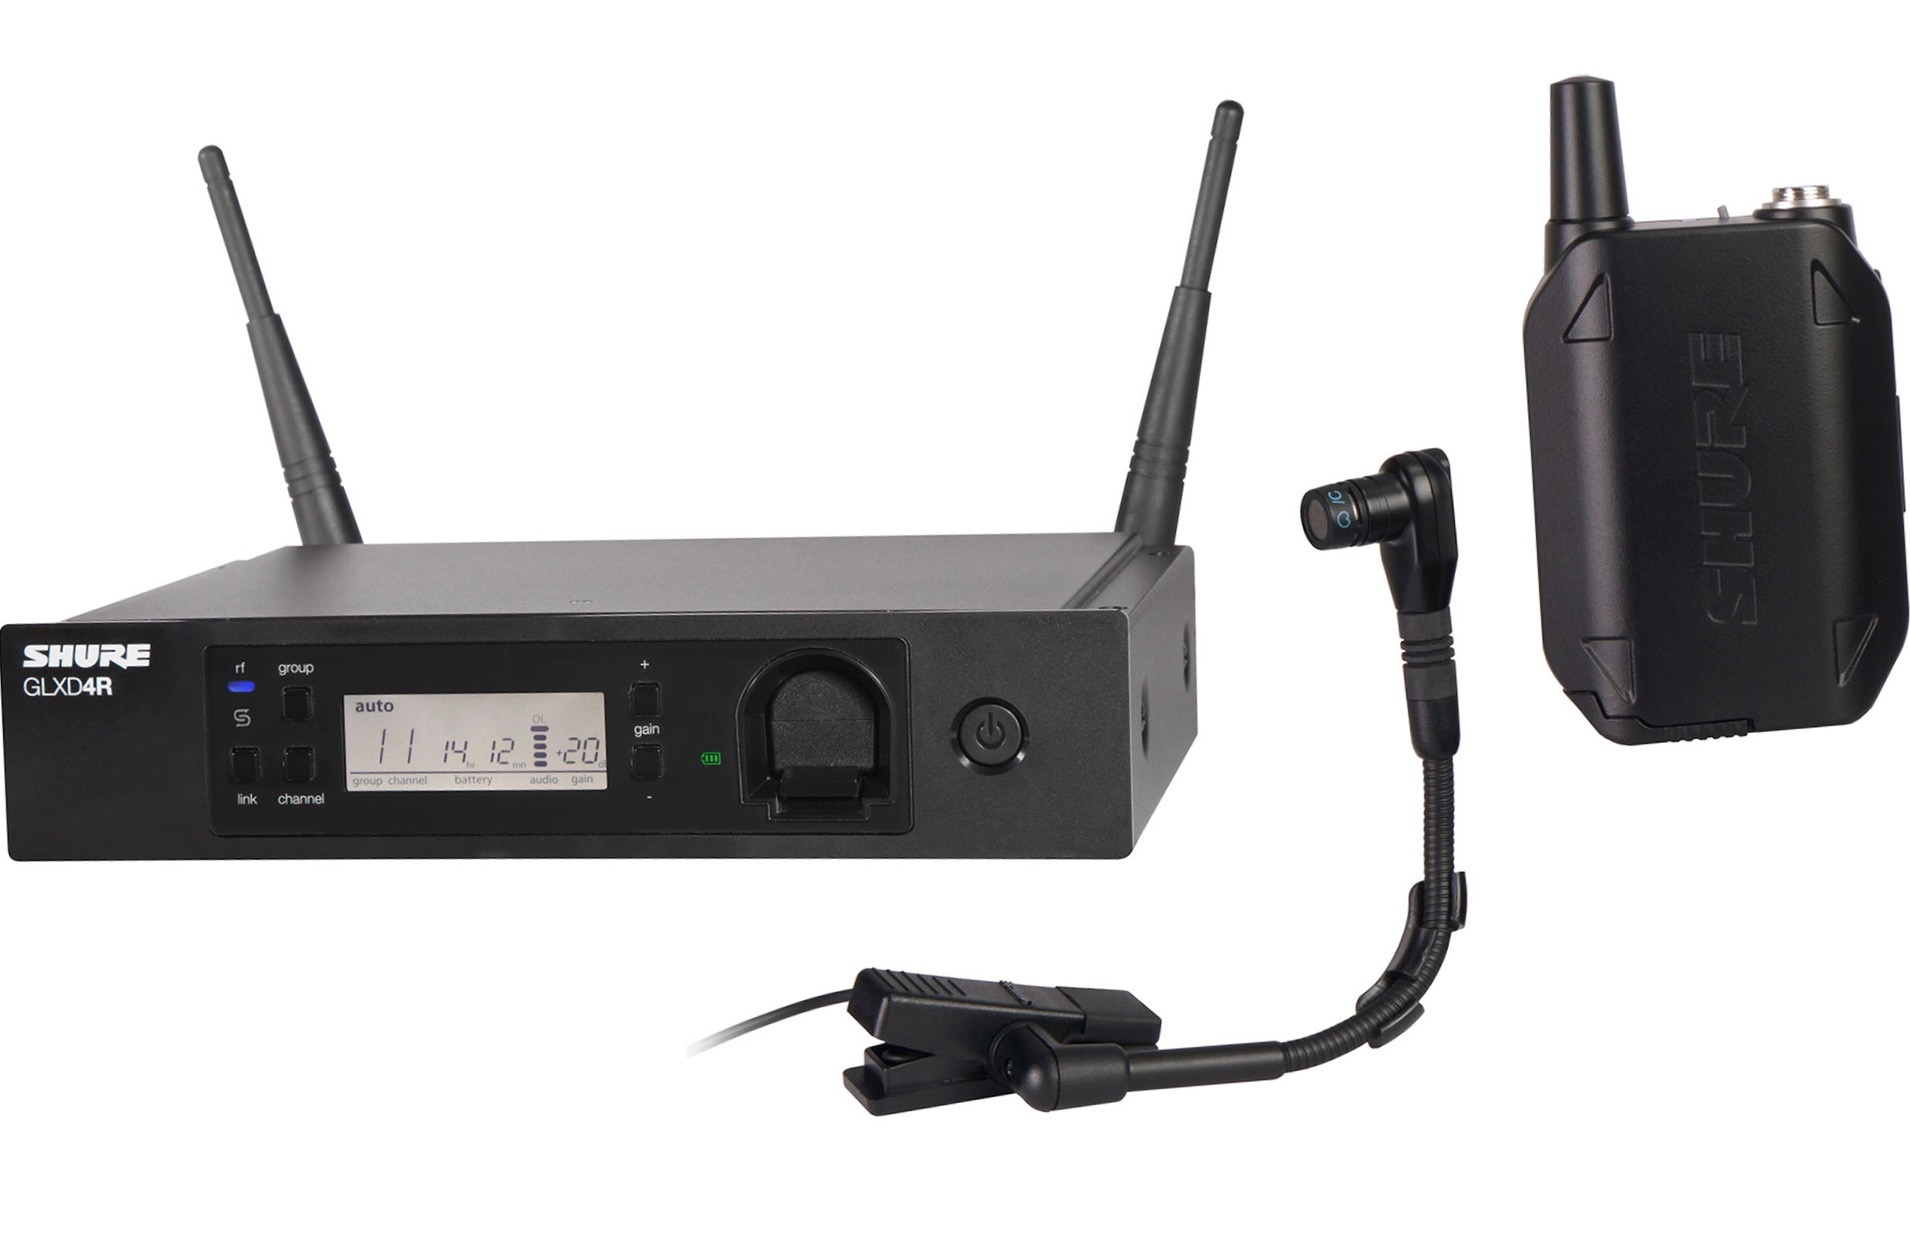 *NEW PRODUCT* SHURE GLX-D ADVANCED WIRELESS INSTRUMENT MICROPHONE